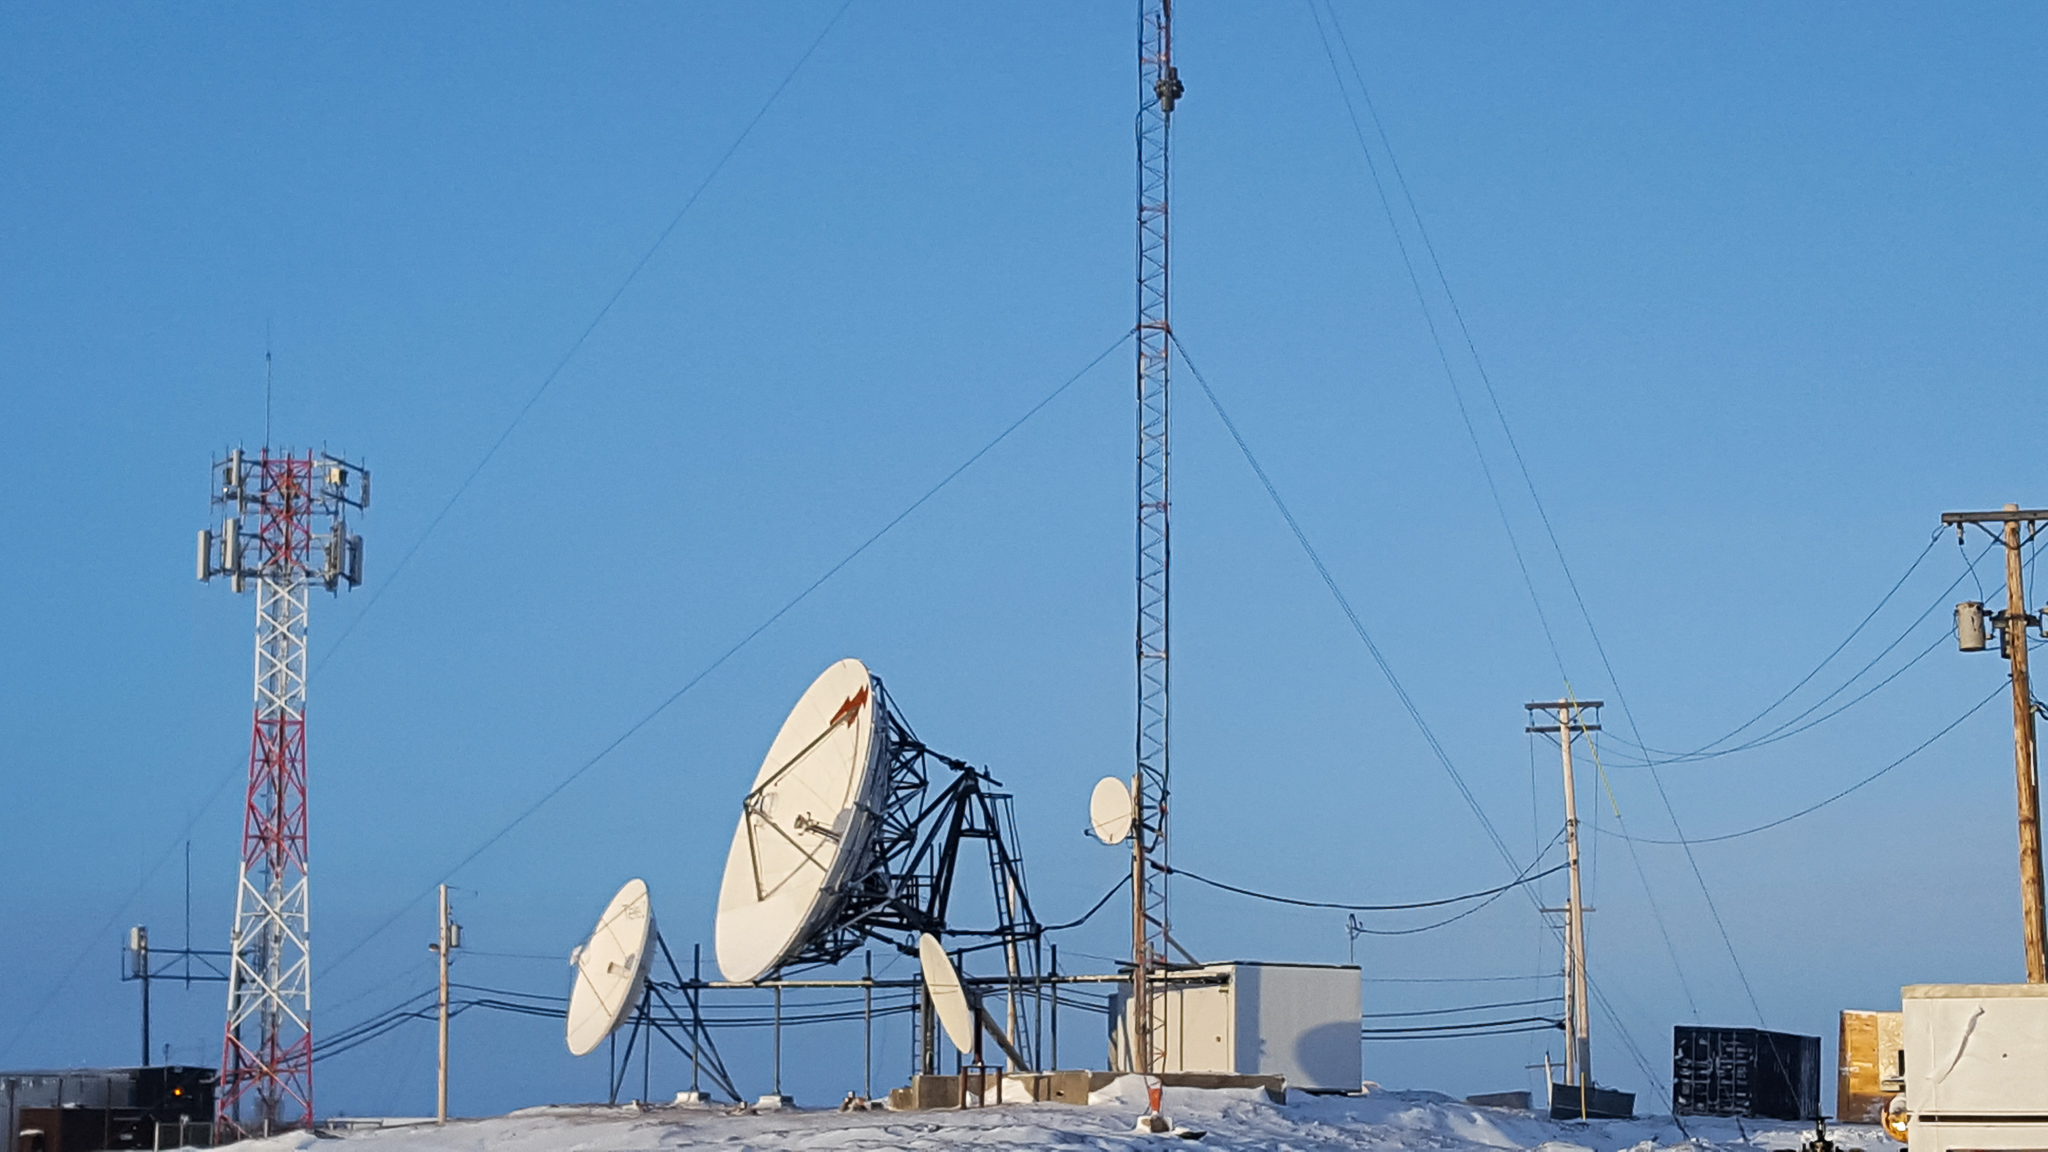 satelite dish and communications infrastructure